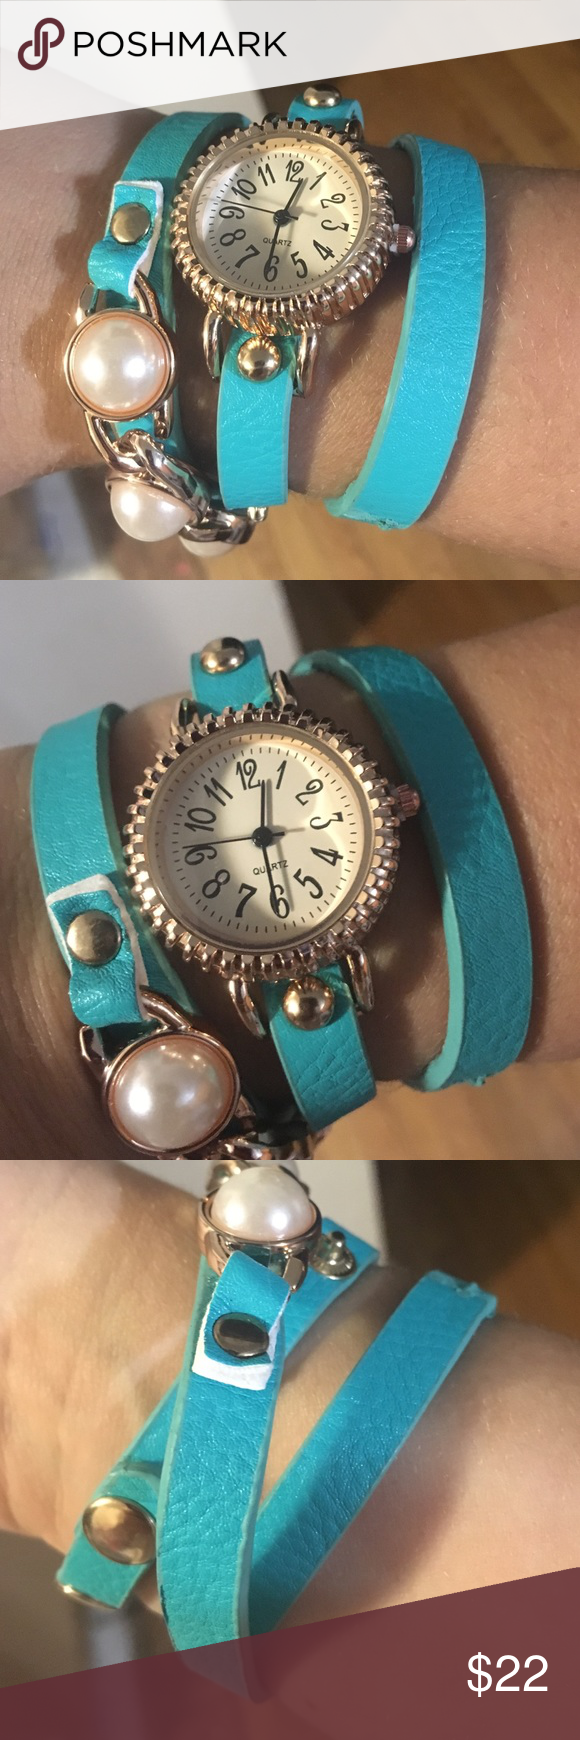 Teal and gold wrap watch This faux leather wrap watch snaps after wrapping twice, and has two snap sizes. Cute pearl accents- adorable statement piece! Accessories Watches